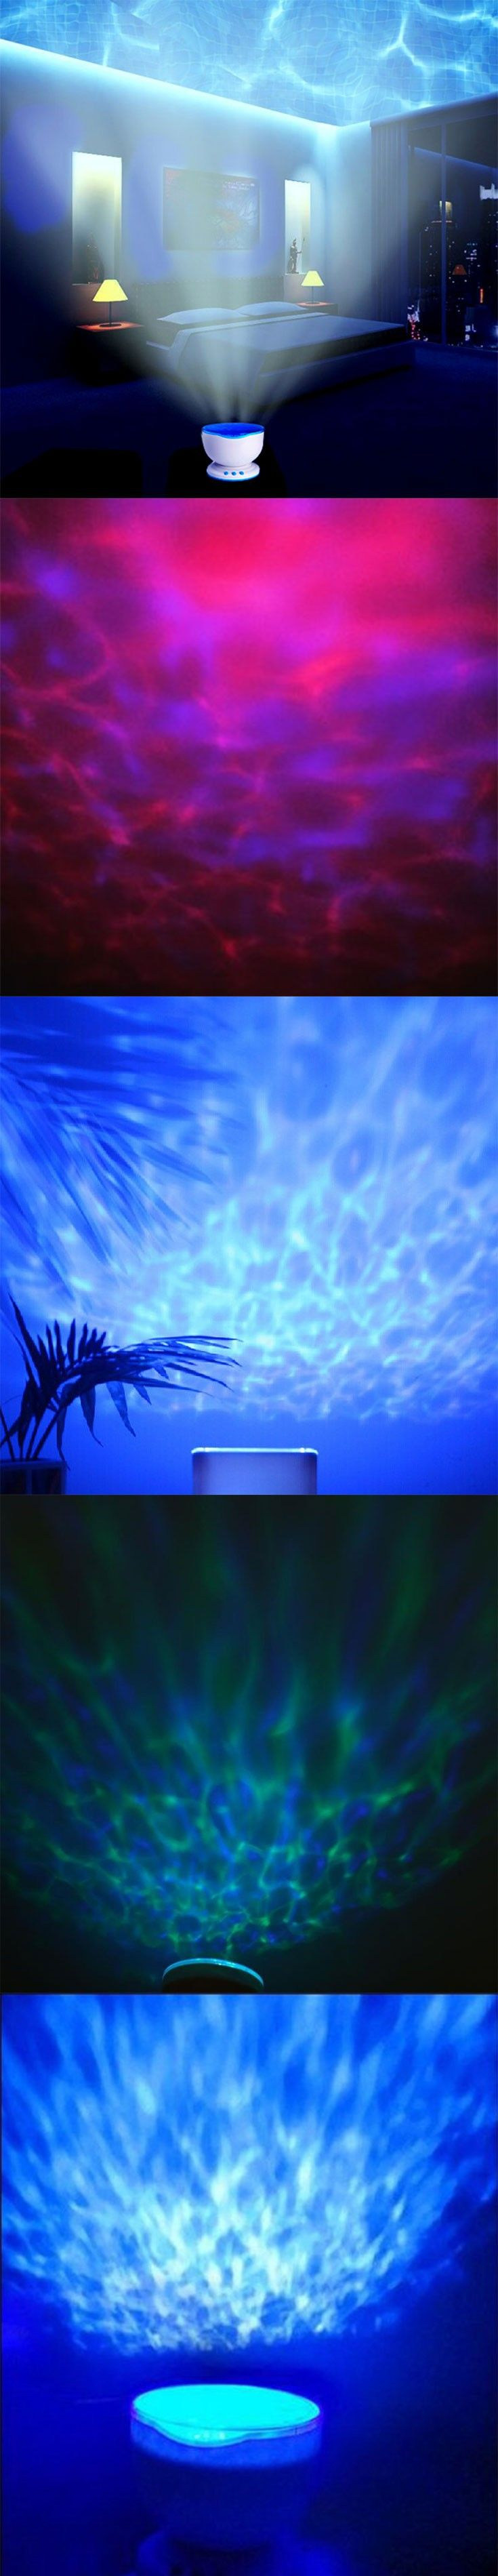 Night Stars Bedroom Lamp 17 Best Ideas About Ceiling Projector On Pinterest The Projector